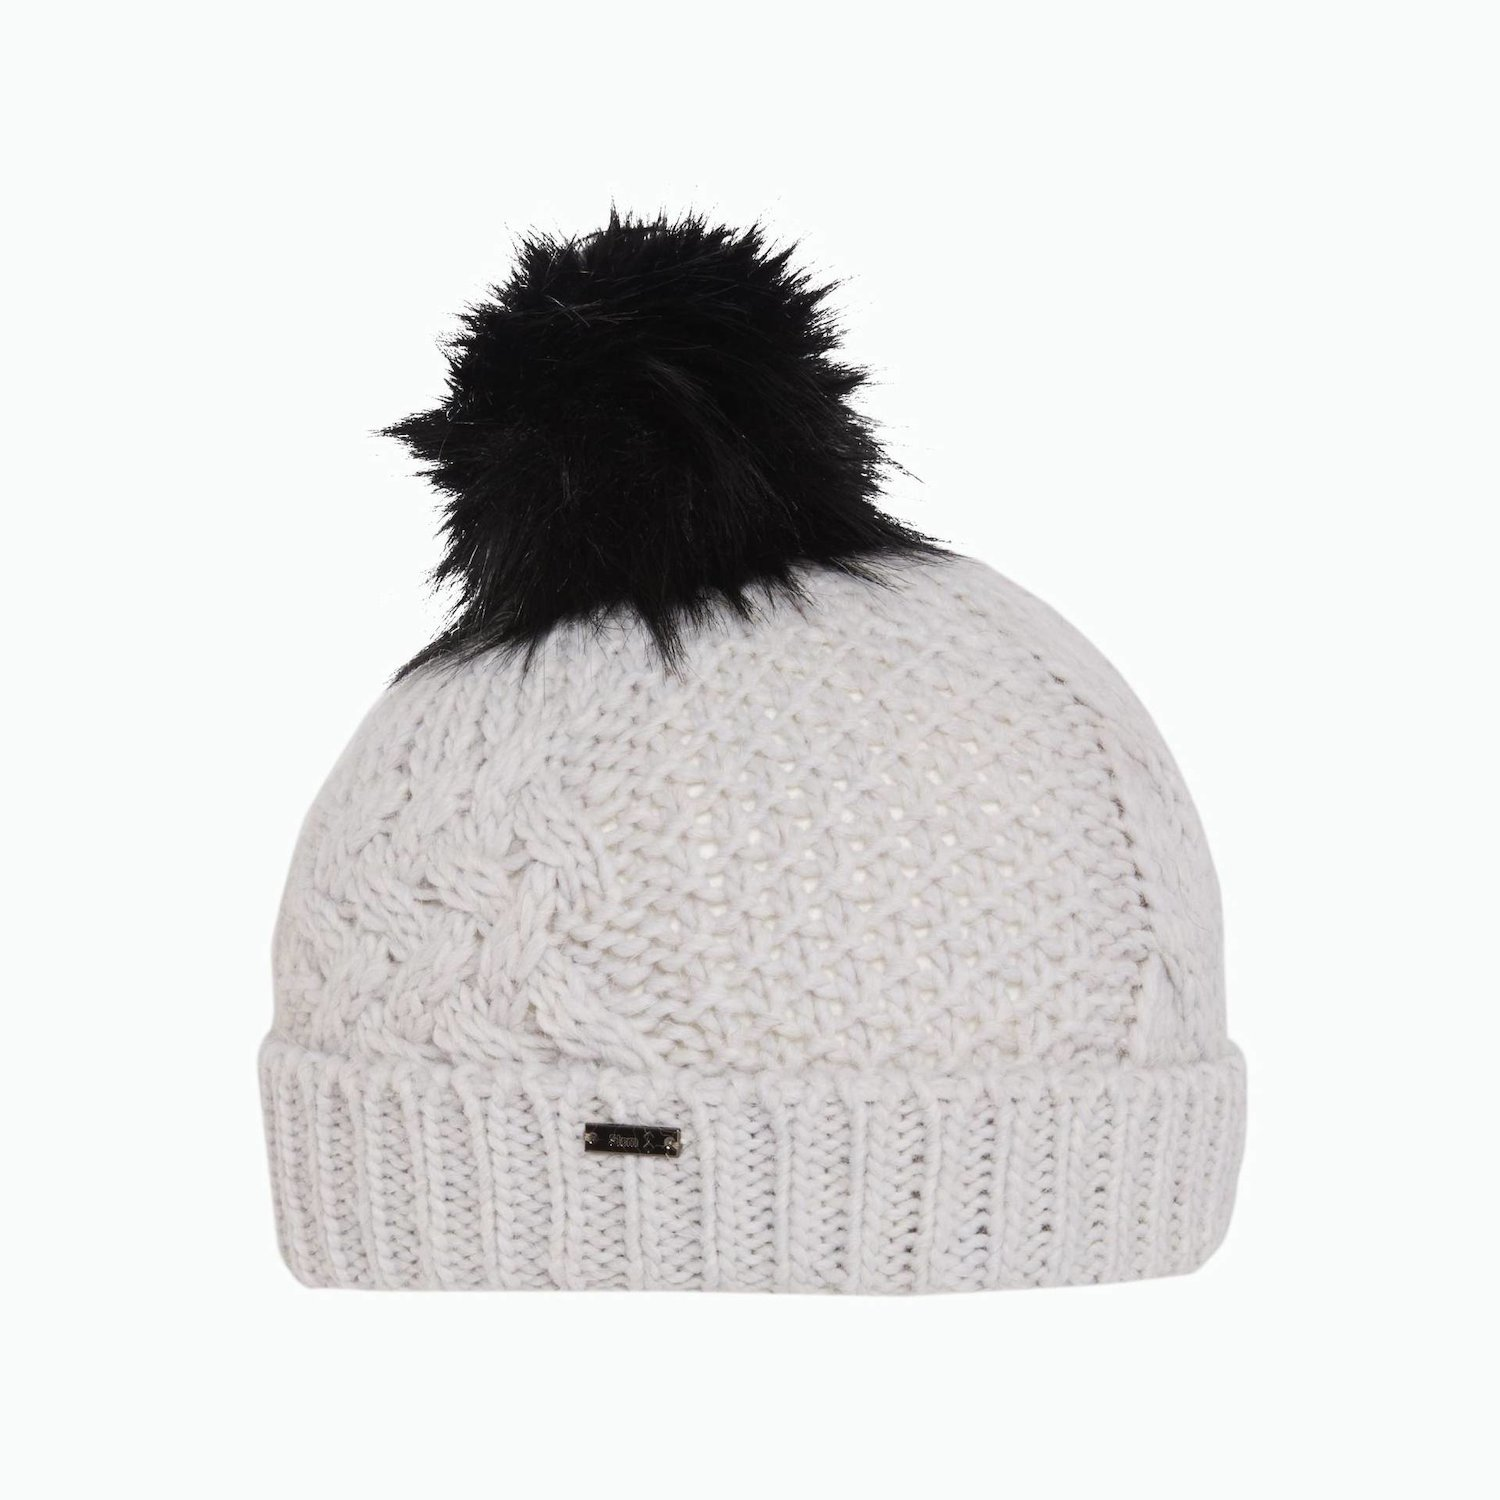 B181 Hat - Fog Grey